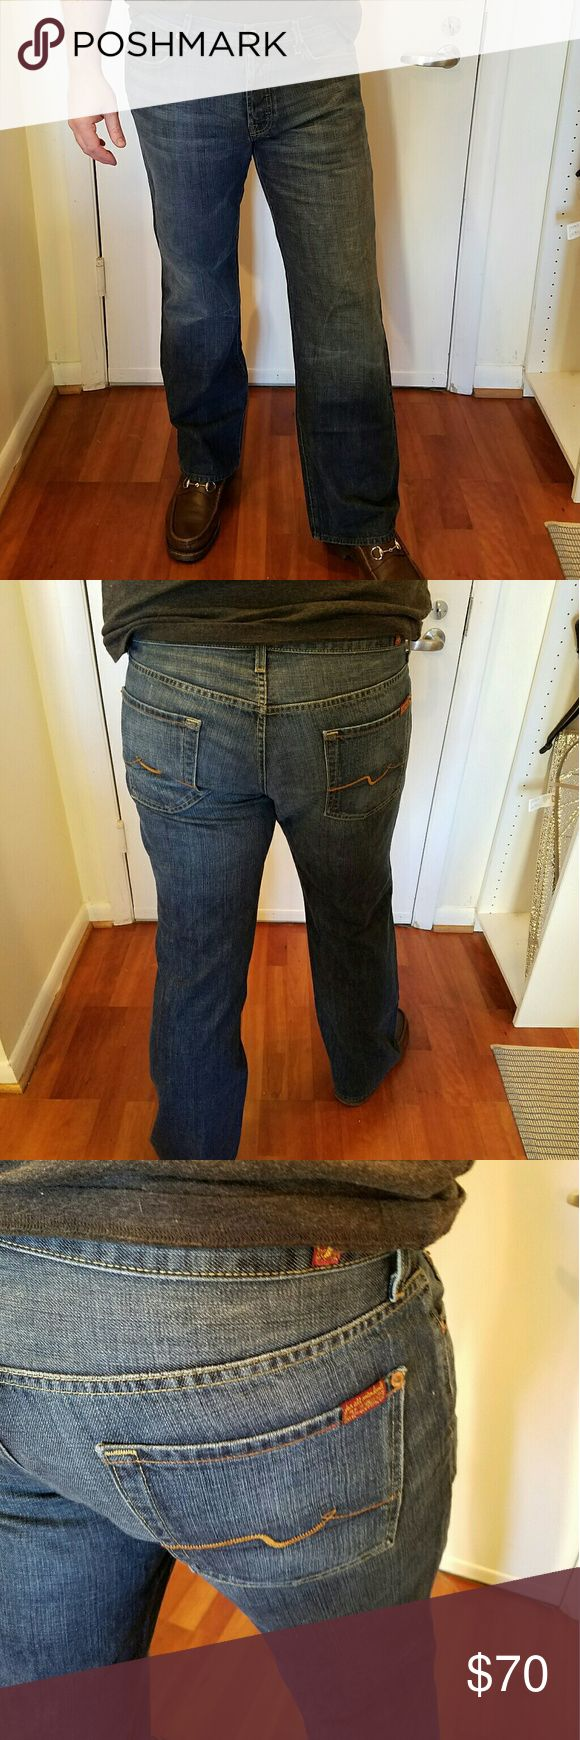 Mens 7 For All Mankind Jeans Mens Seven jeans Relaxed 36 x 33. Cut # 716941  button fly   Seven jeans for men. Get your man some stylish designer jeans. 7 For All Mankind Jeans Relaxed